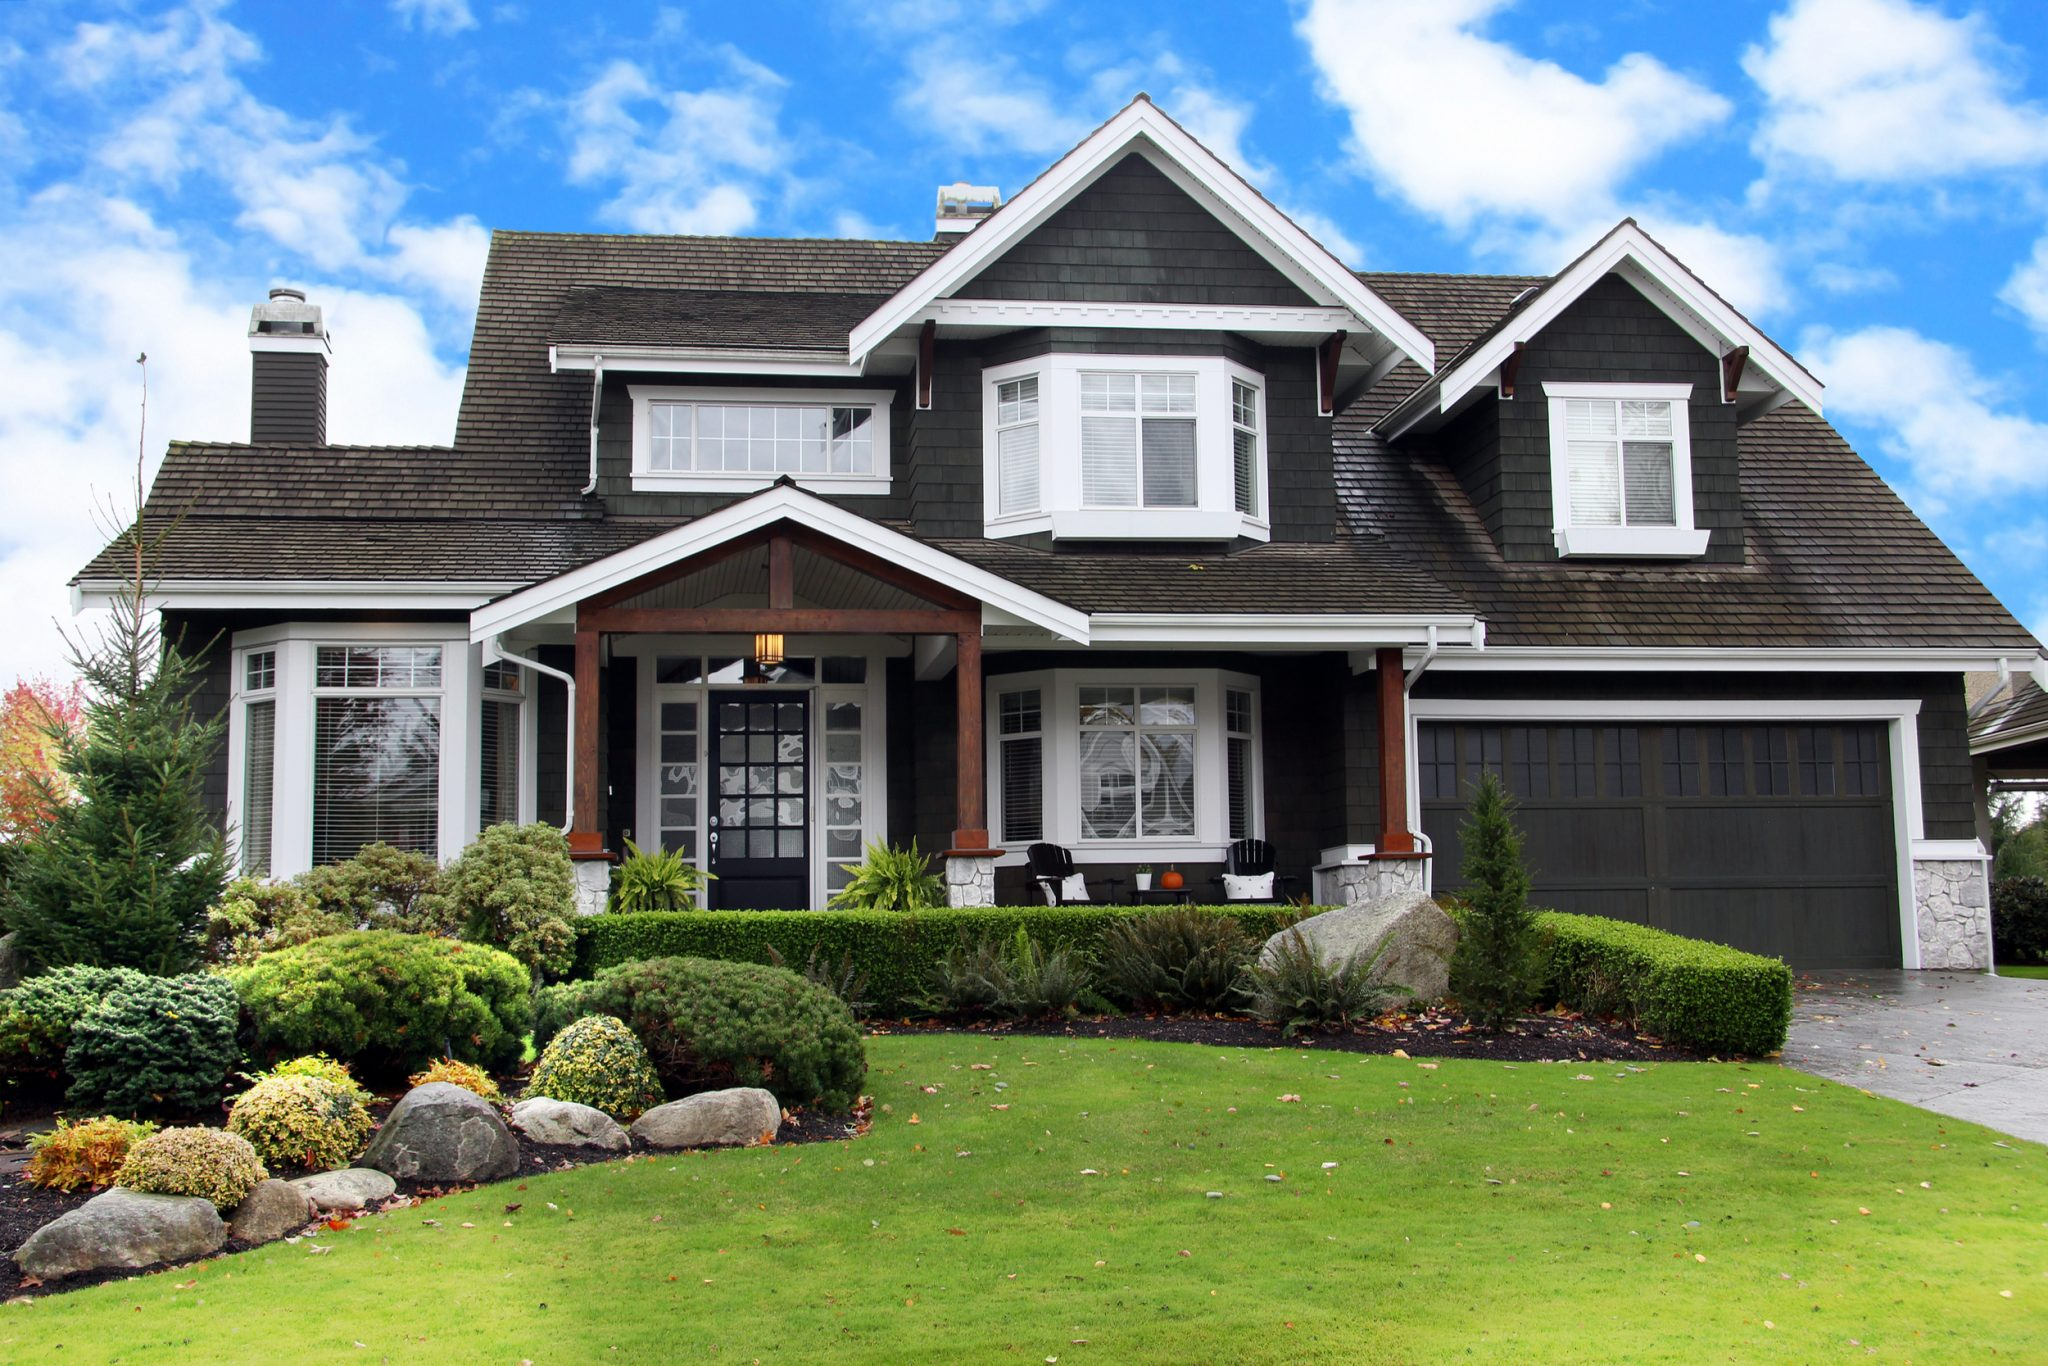 Is Your Home's Curb Appeal Turning Buyers Away?